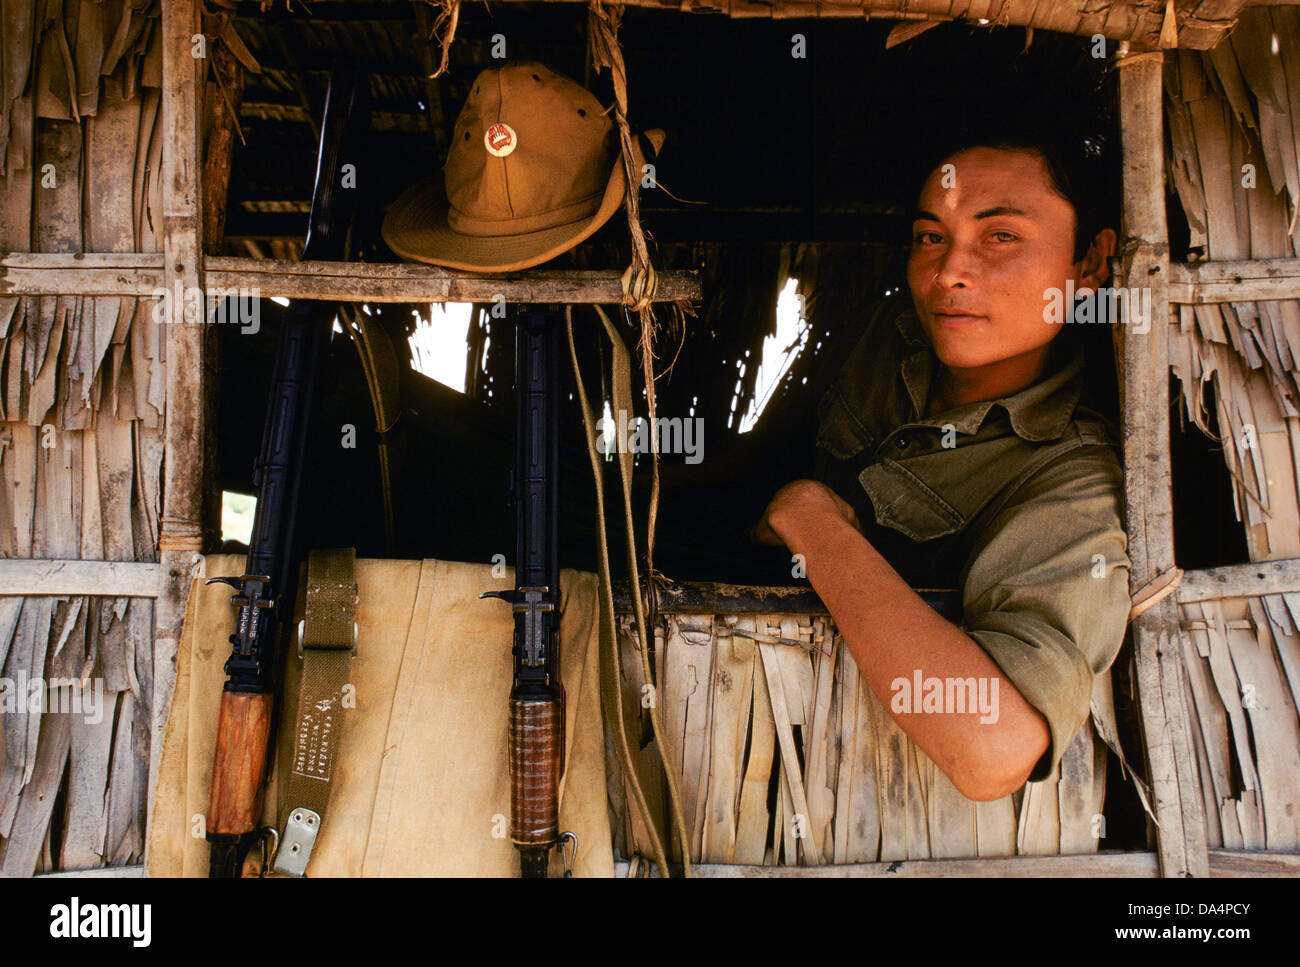 Khmer Rouge Soldiers Stock Photos & Khmer Rouge Soldiers